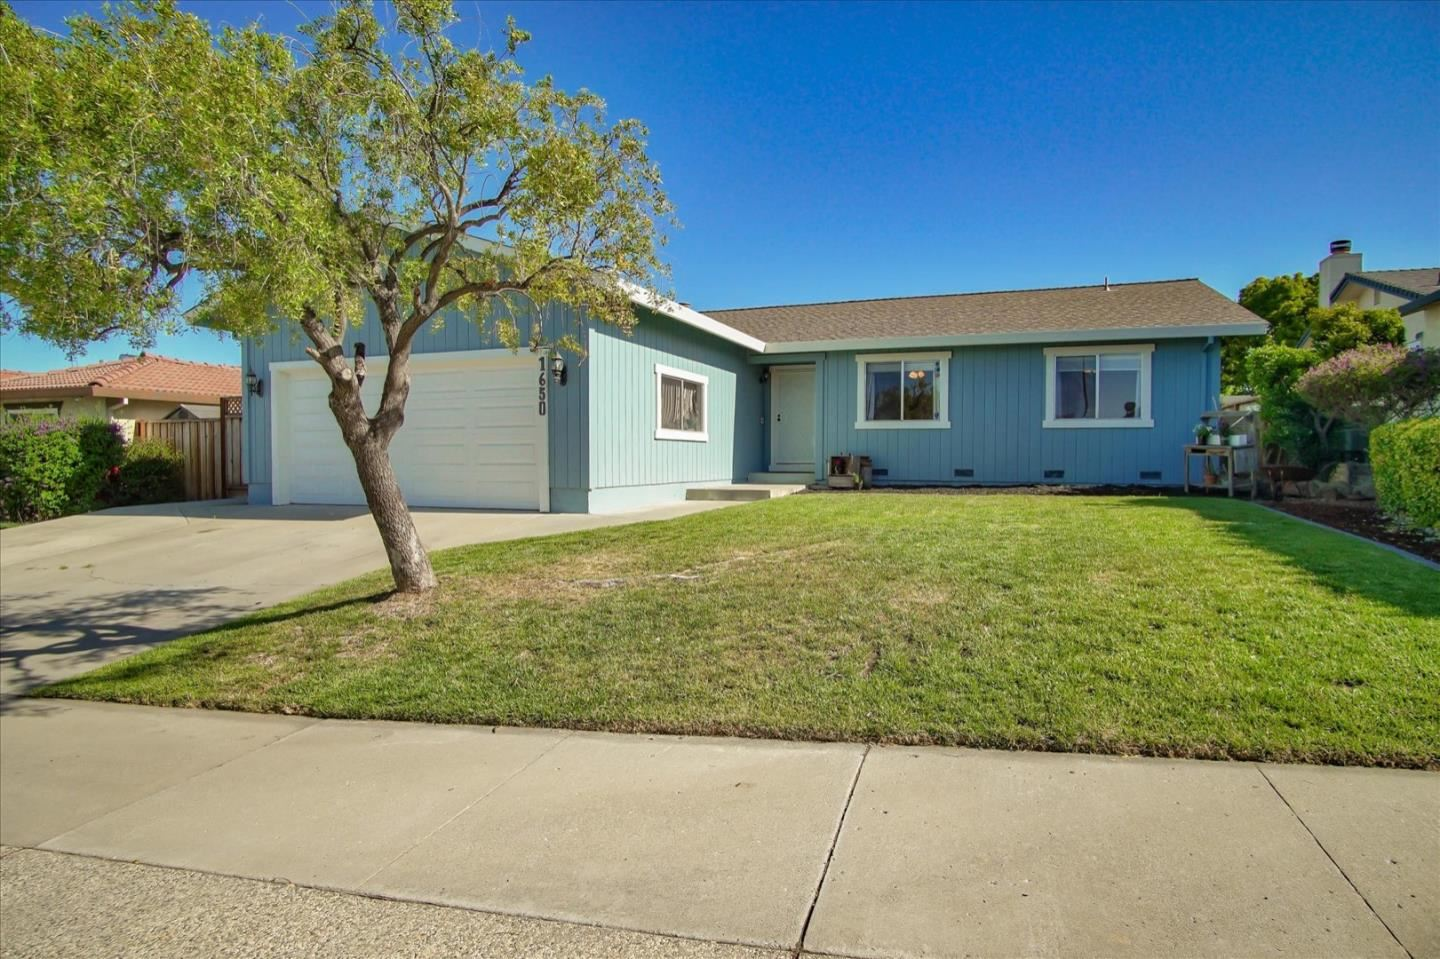 Photo for 1650 Sunset DR, HOLLISTER, CA 95023 (MLS # ML81798929)